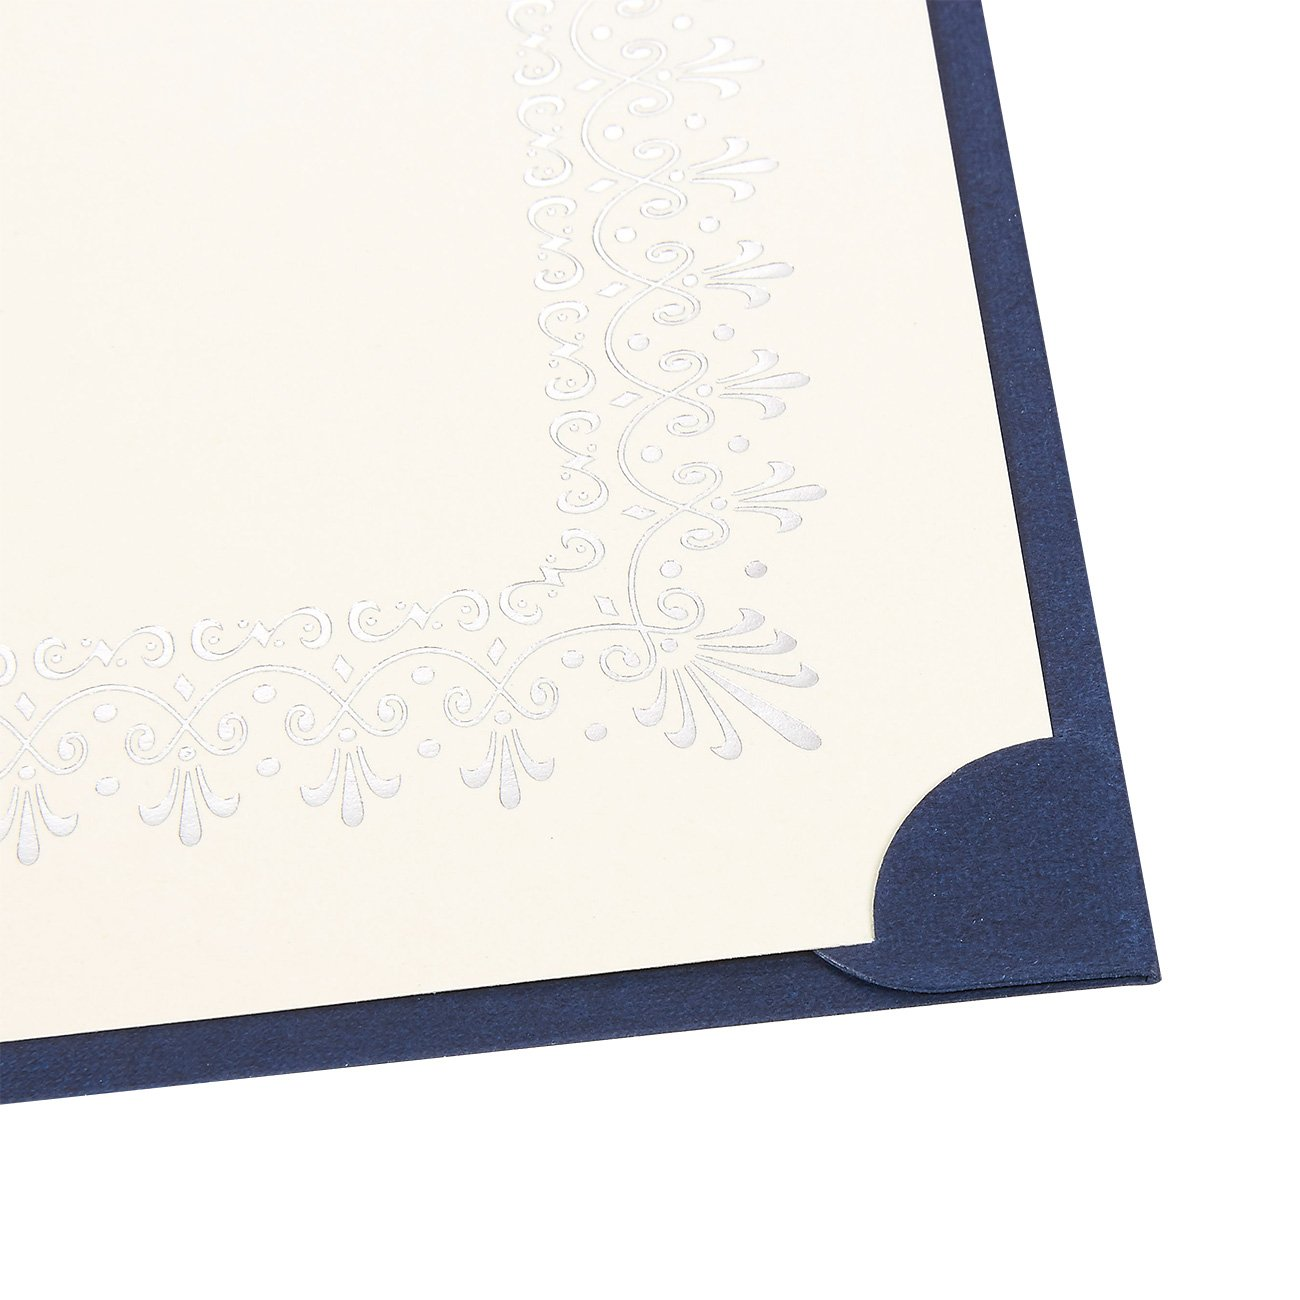 12-Pack Certificate Holder - Diploma Cover, Document Cover for Letter-Sized Award Certificates, Blue, 11.2 x 8.7 inches by Best Paper Greetings (Image #4)